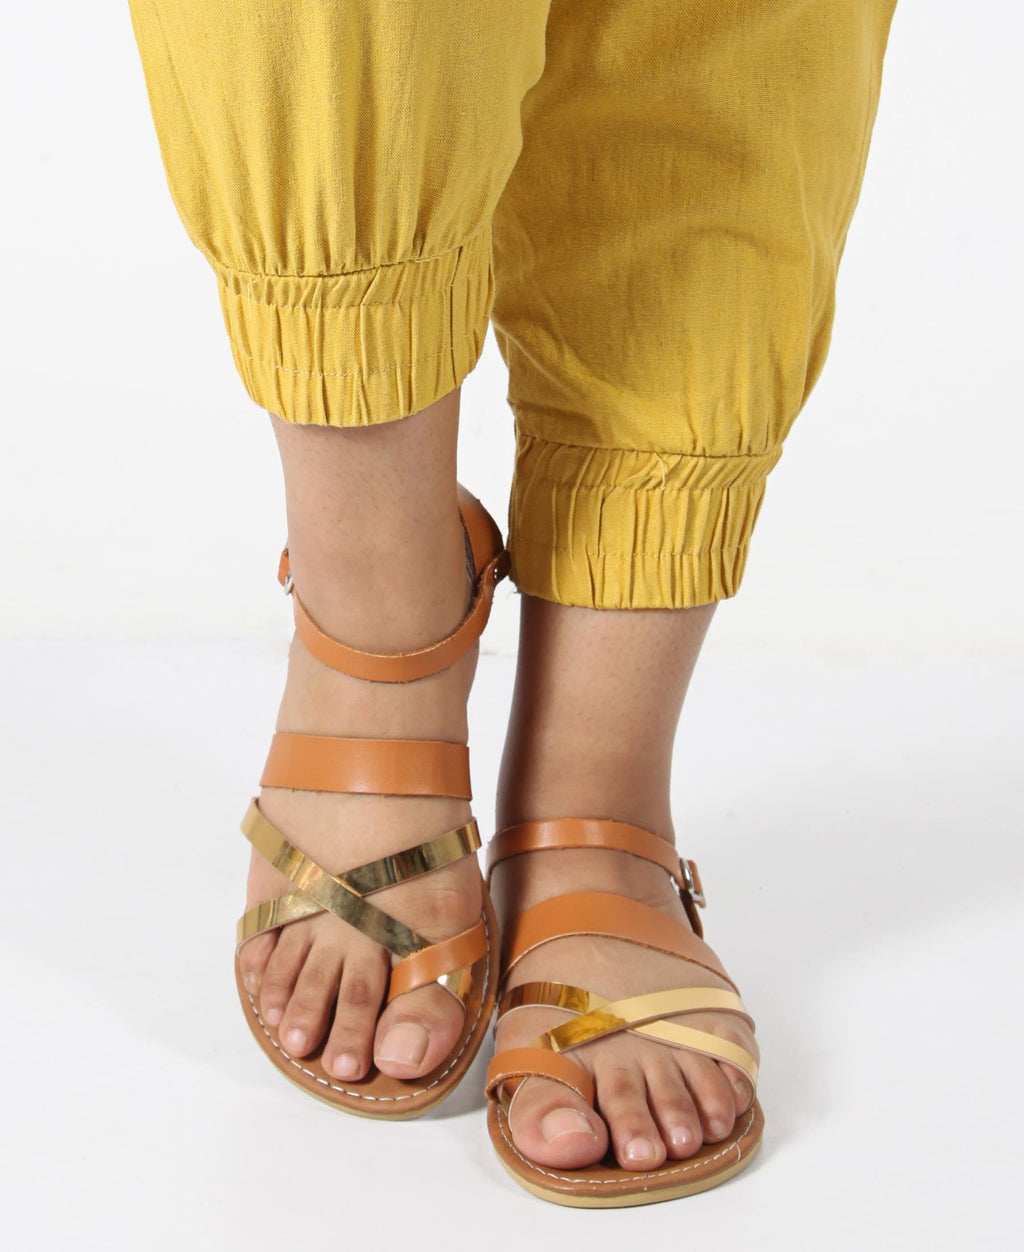 Buckle Strappy Flat Sandals - Tan